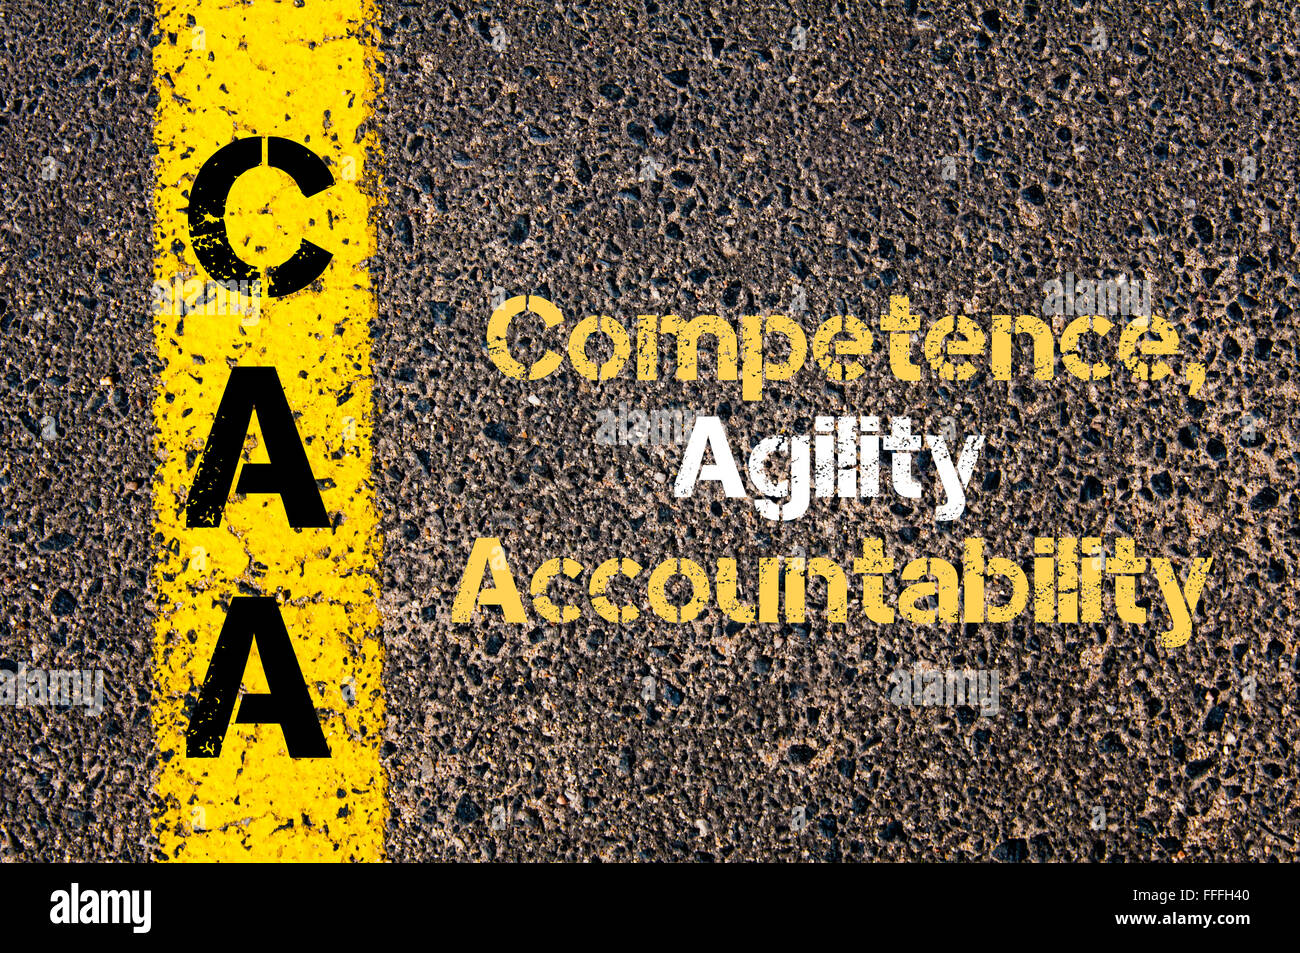 Concept image of Business Acronym CAA Competence, Agility, Accountability written over road marking yellow paint - Stock Image